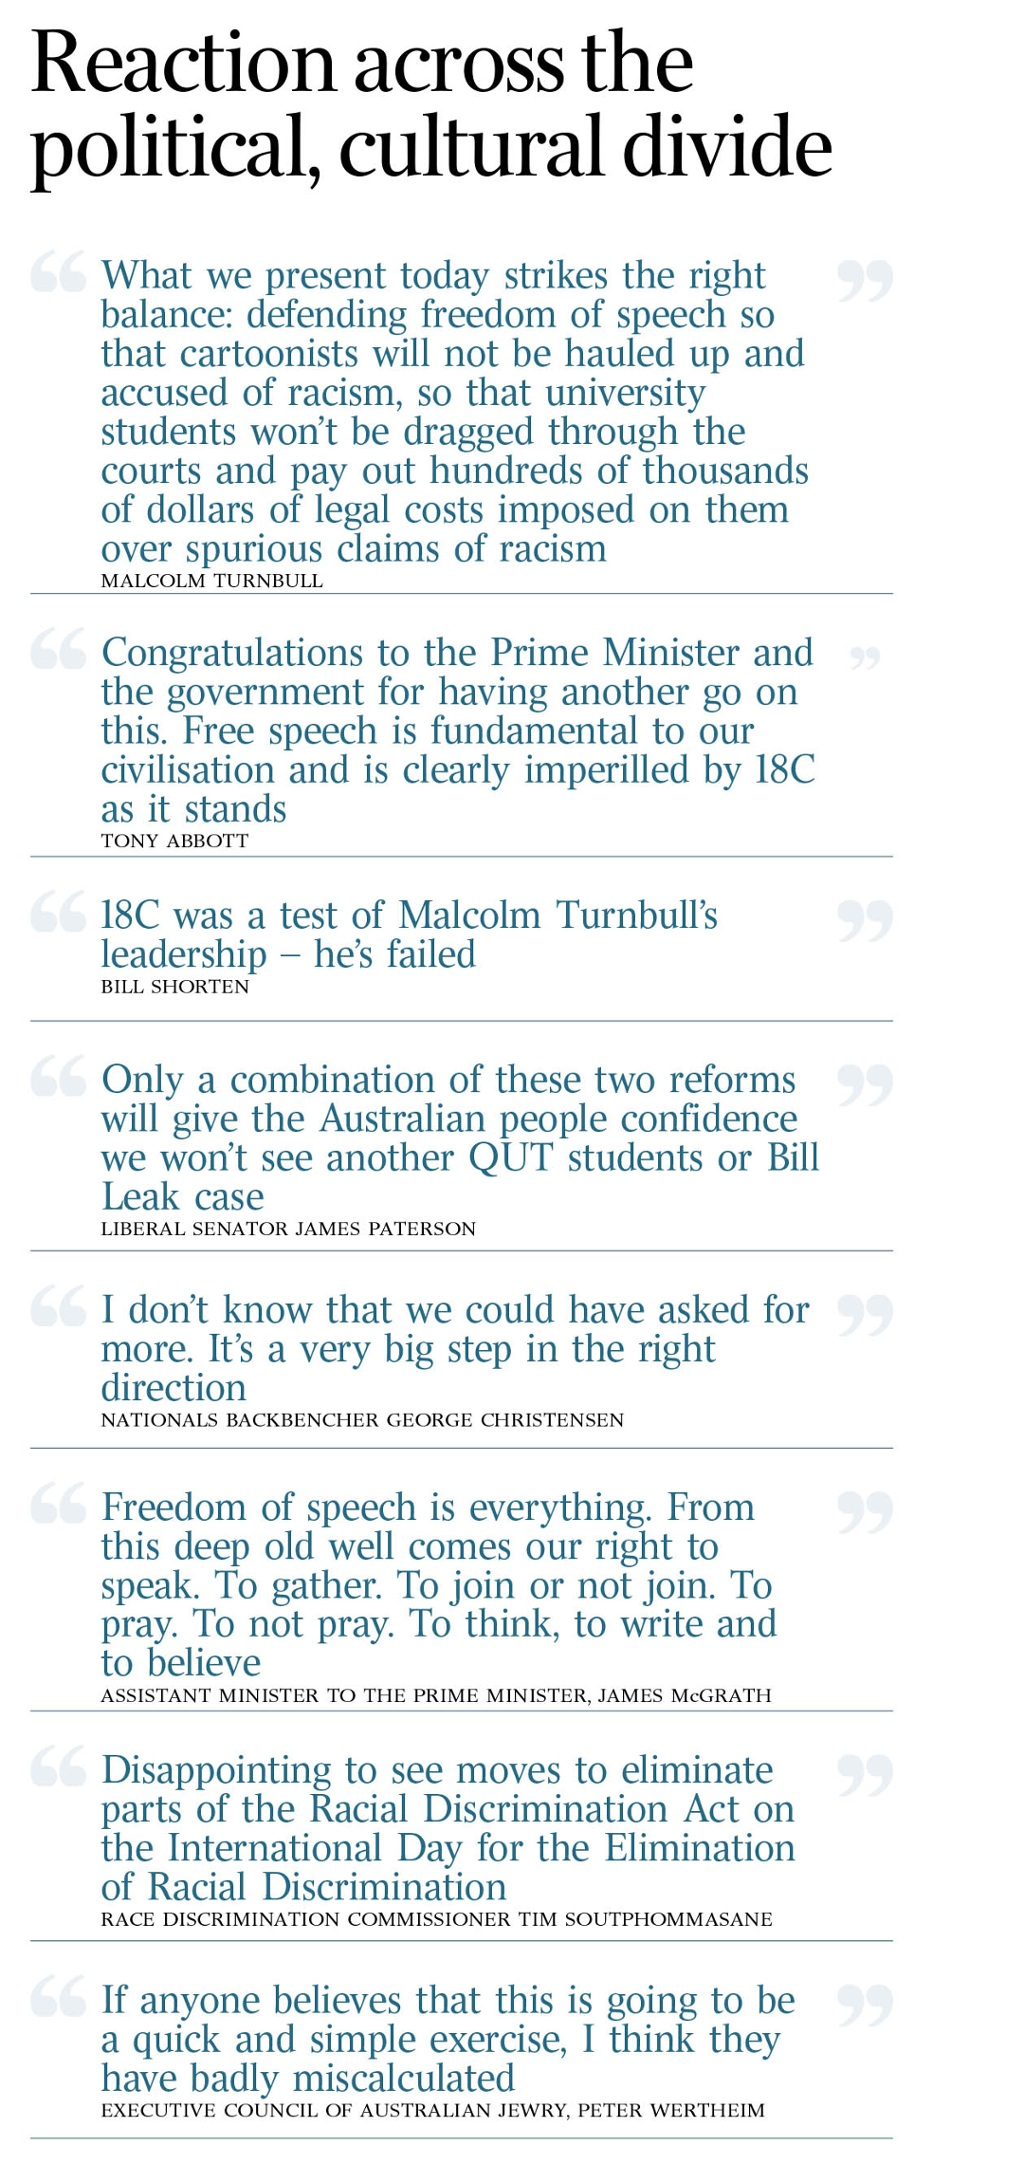 Malcolm Turnbull's crusade for free speech with 18C reforms